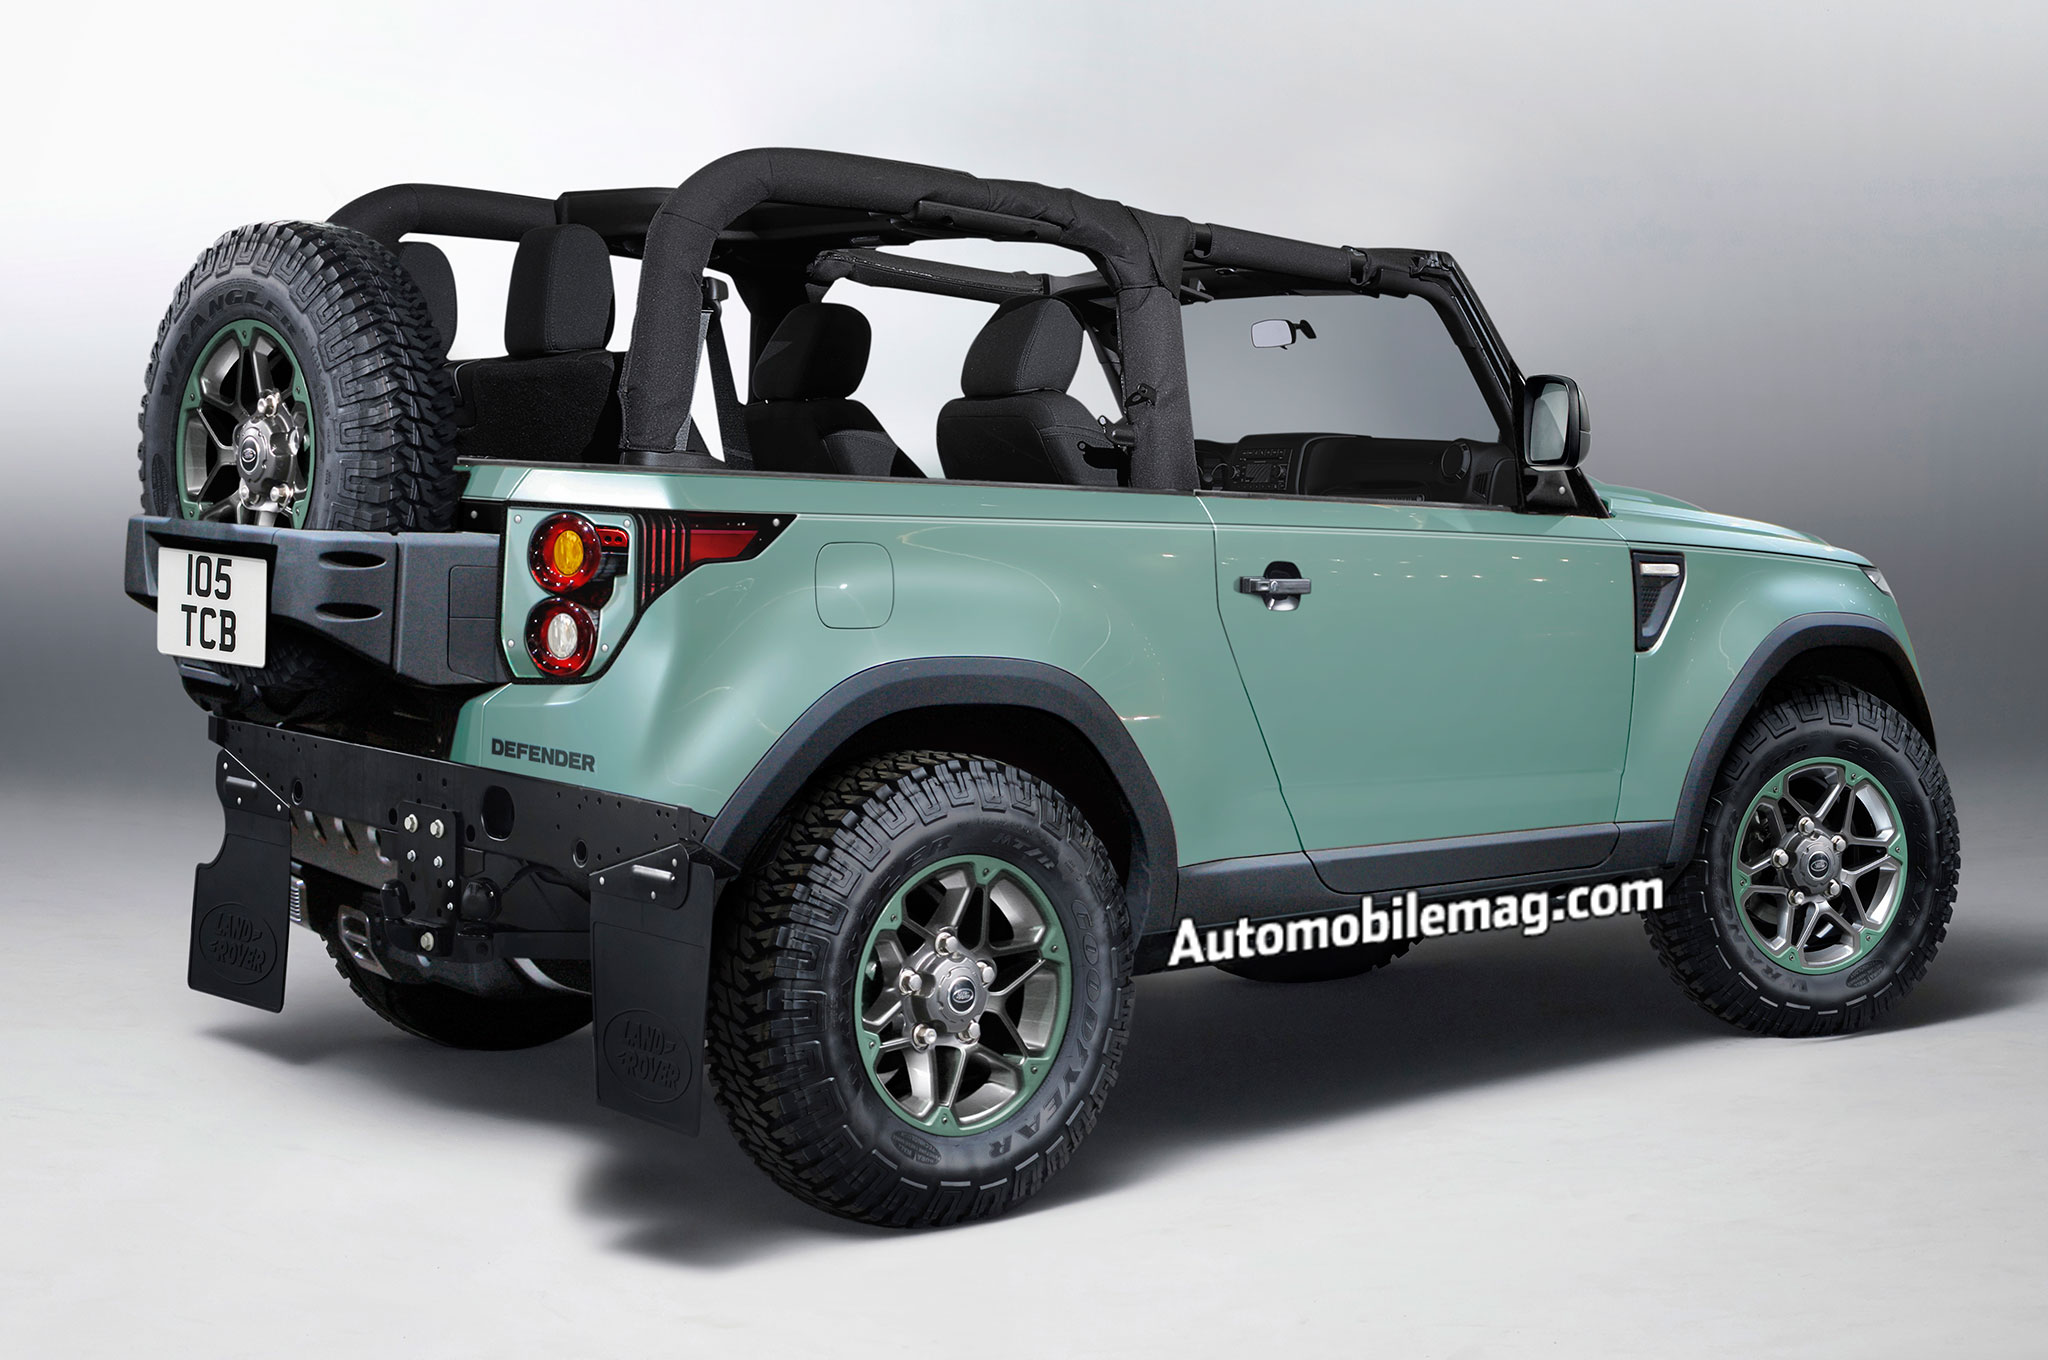 land rover defender interior 2016 with Deep Dive All New 2019 Land Rover Defender An Icon Reinvented on New Land Rover Defender Launch 2018 furthermore 1110434 the 2017 Ford Raptor Merges Awd And 4wd furthermore 2152 Dacia Grand Duster Ausblick Suv 7 Sitzen Ab 2018 together with Index also Deep Dive All New 2019 Land Rover Defender An Icon Reinvented.